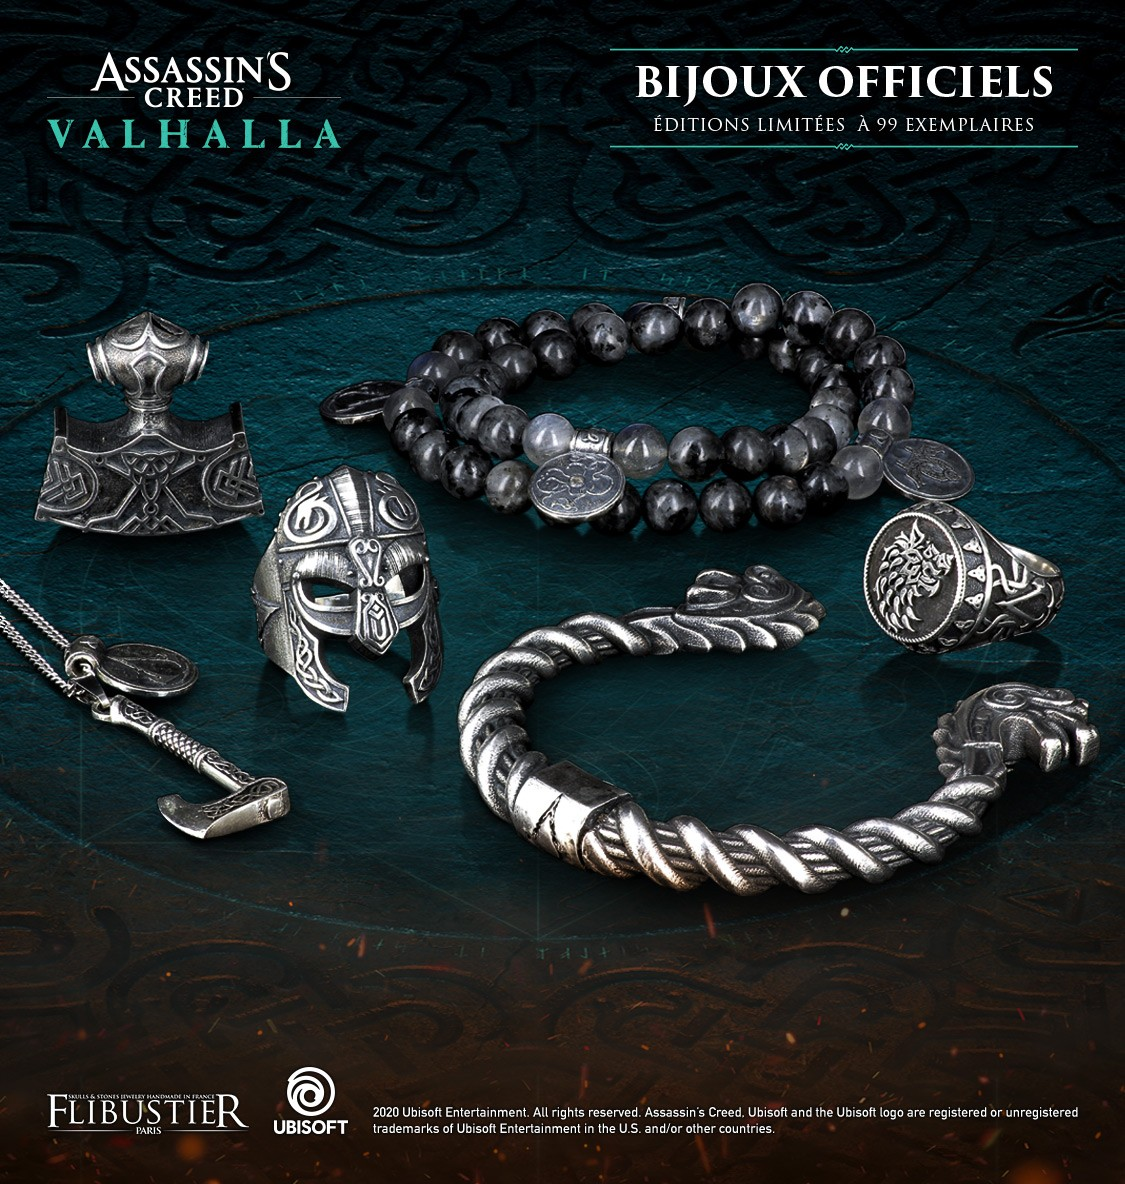 Bijoux officeils Assassin's Creed Valhalla